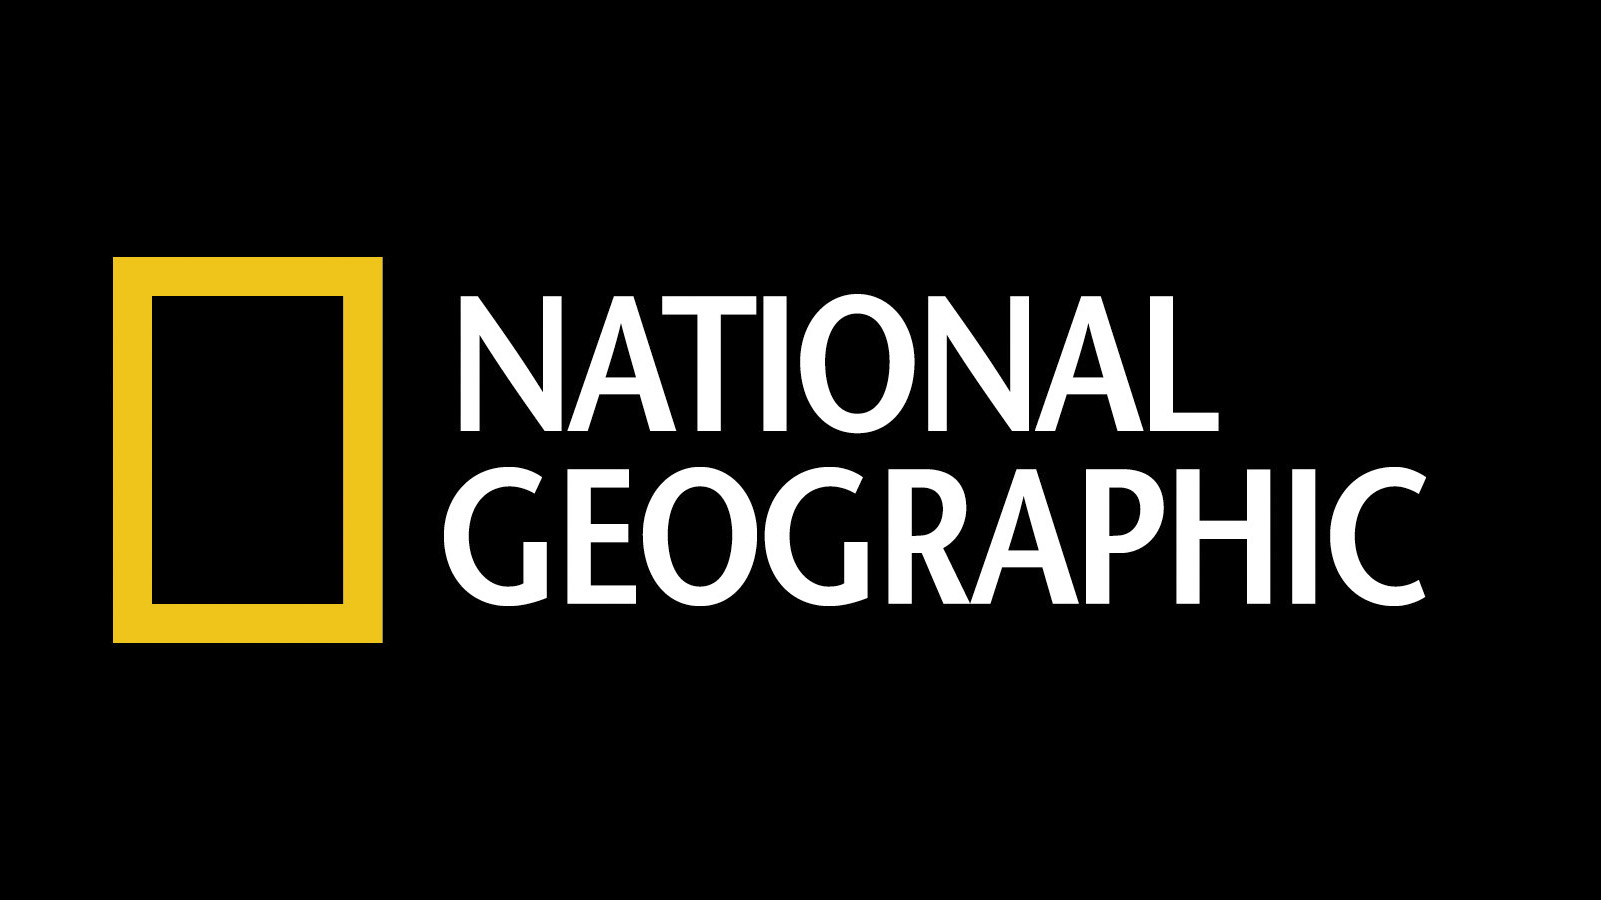 National Geographic Surpasses 100 Million Instagram Followers